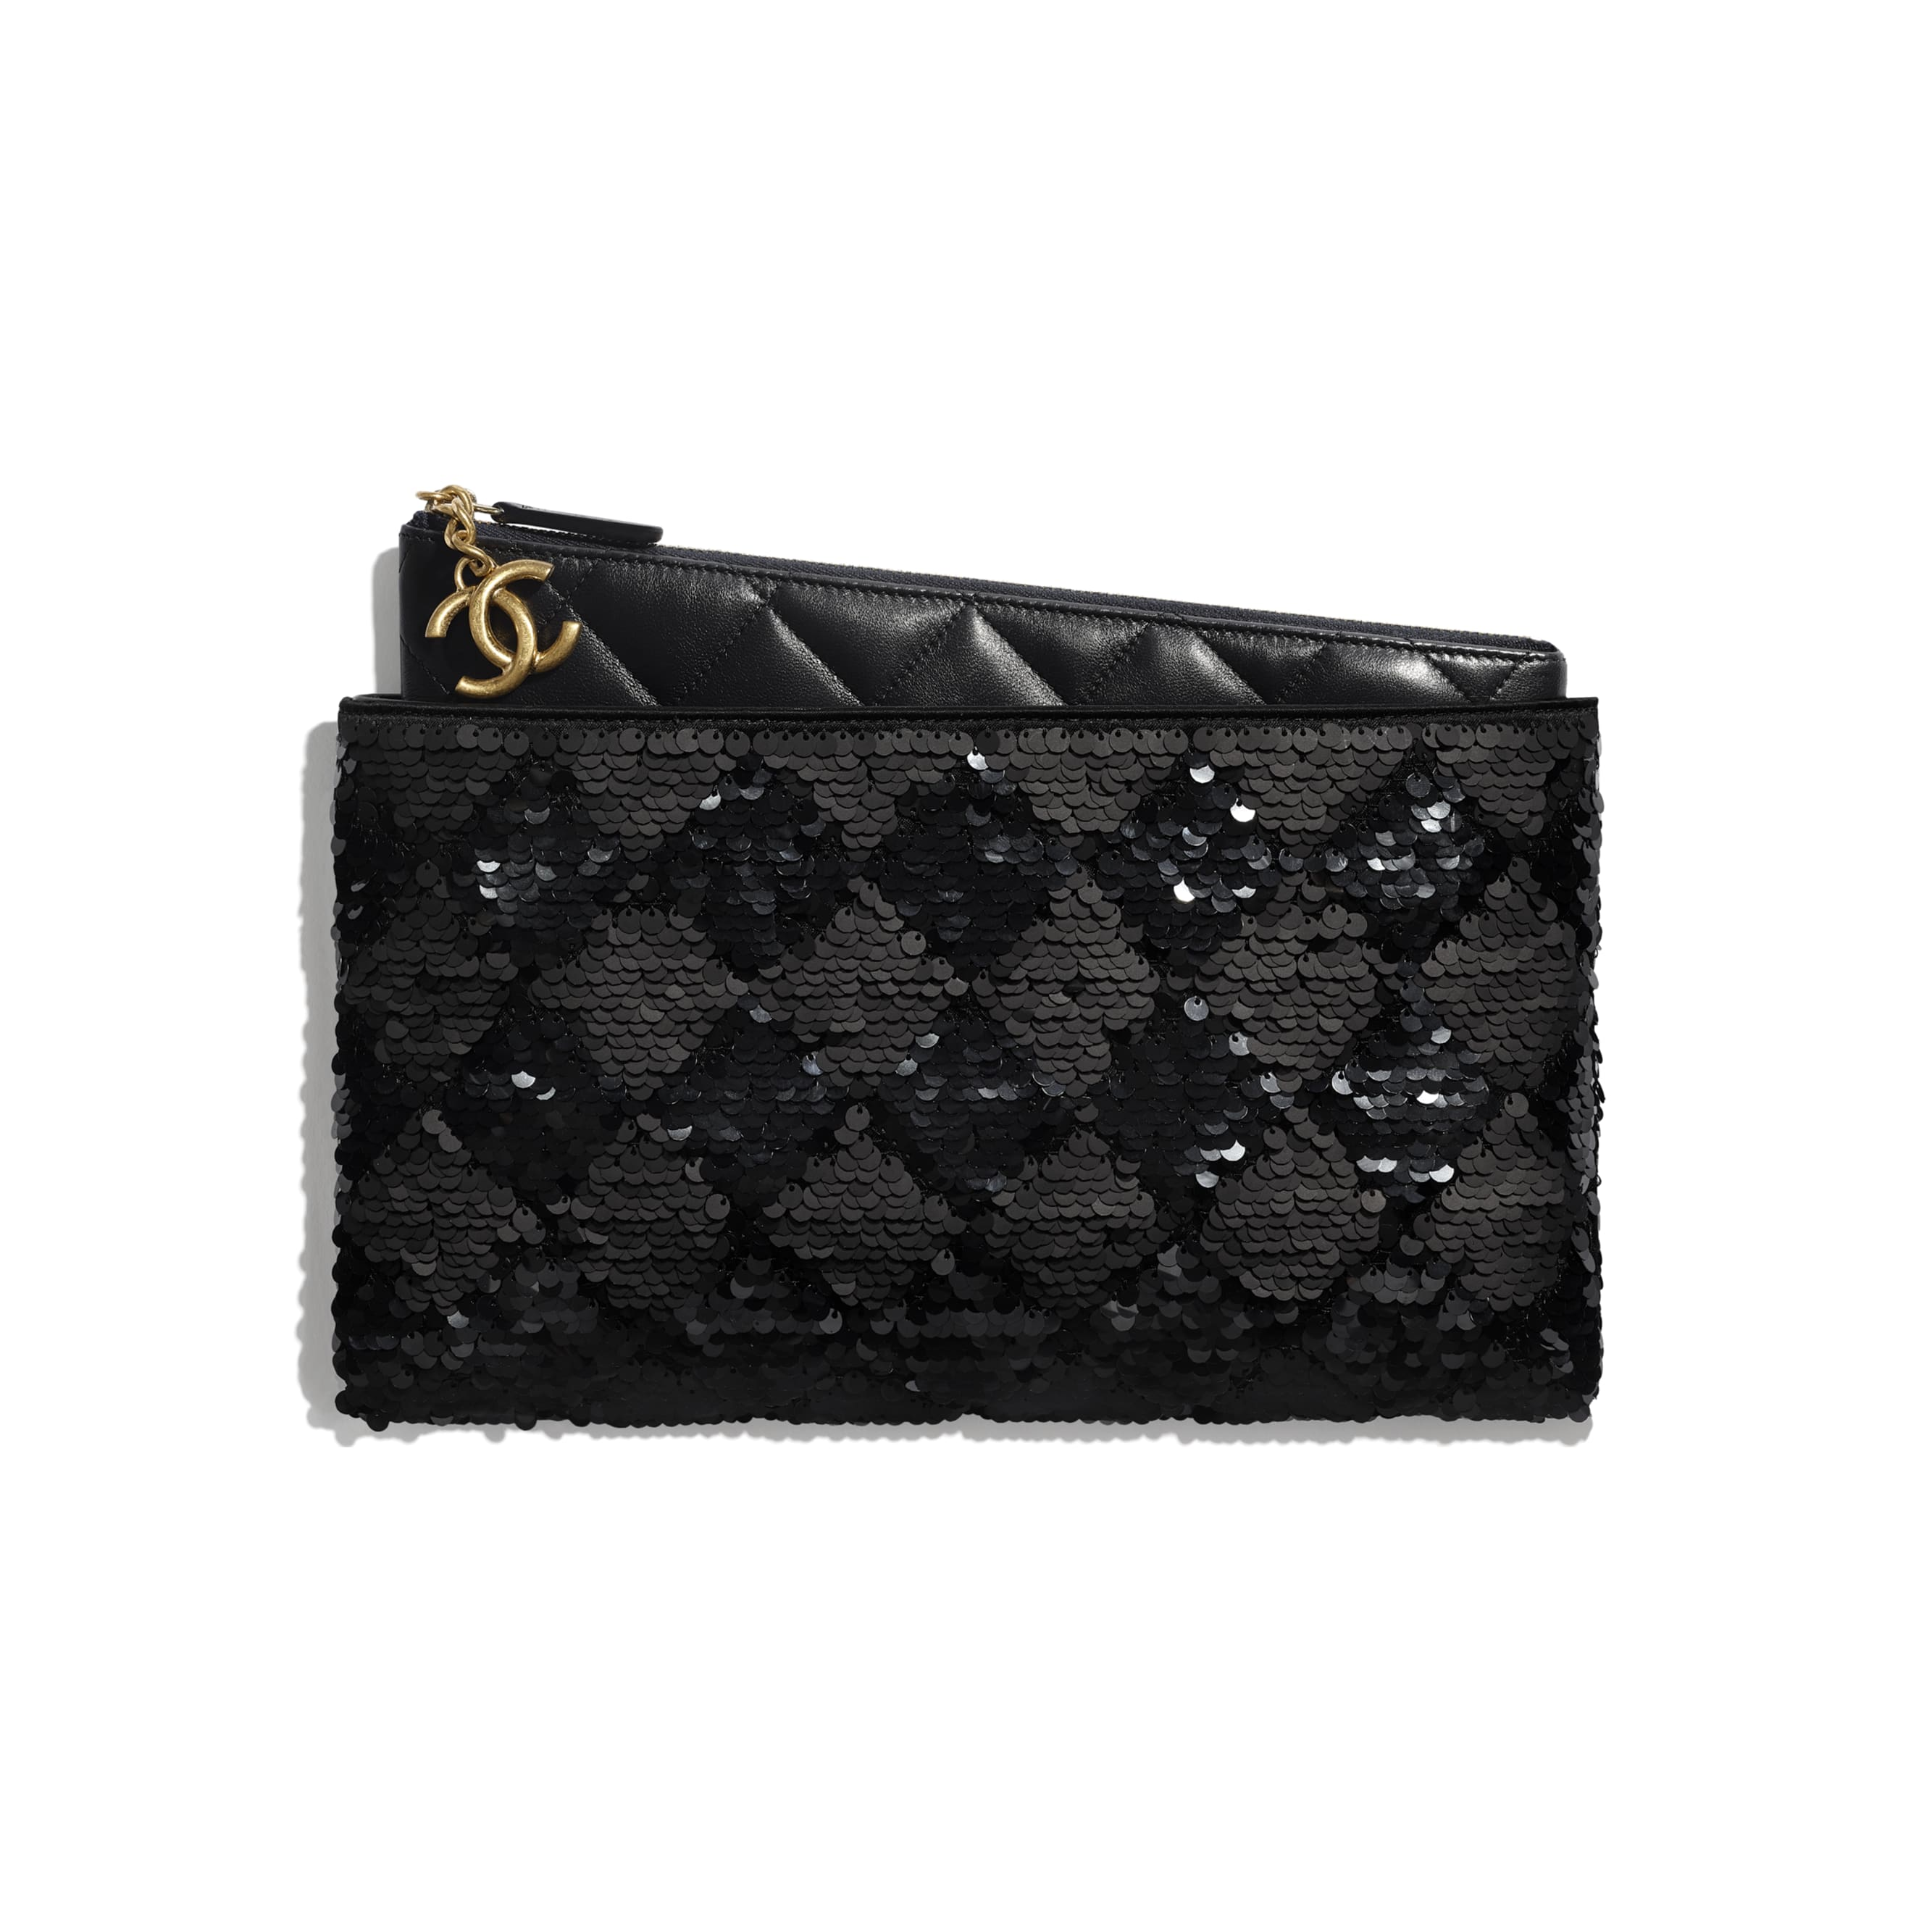 Pouch - Black - Sequins, Lambskin & Gold-Tone Metal - Default view - see standard sized version